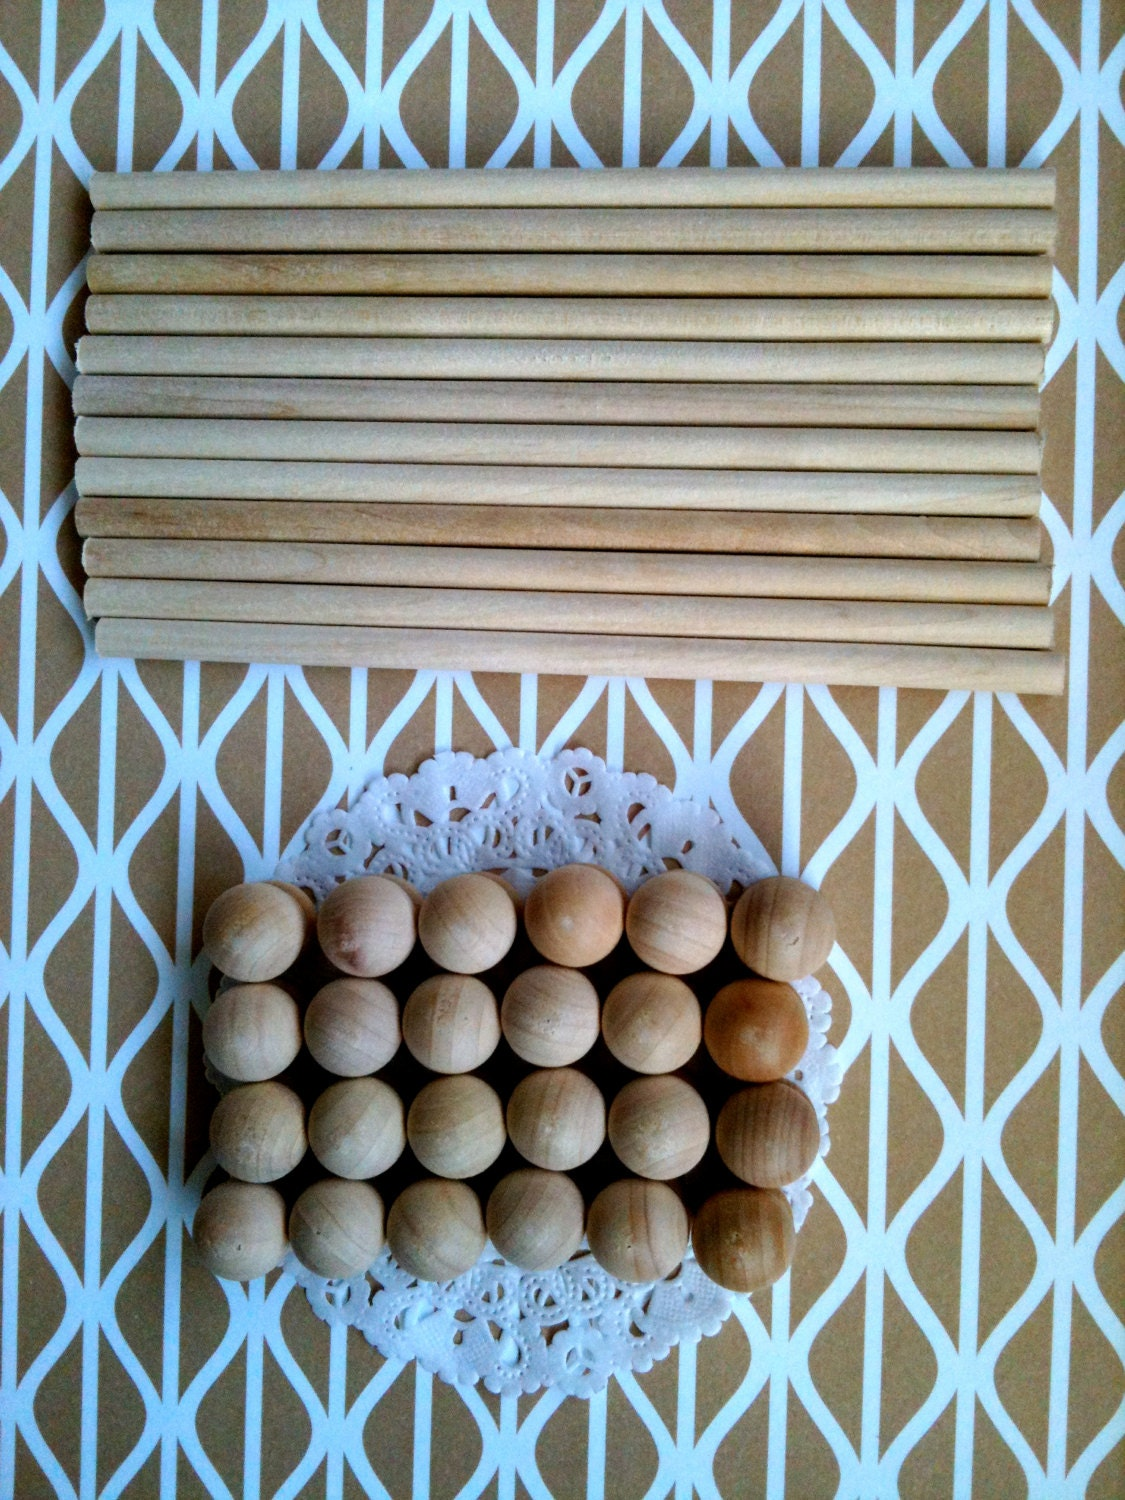 6 Pairs of 6 Wooden Scroll Rods with End Caps for DIY Wedding